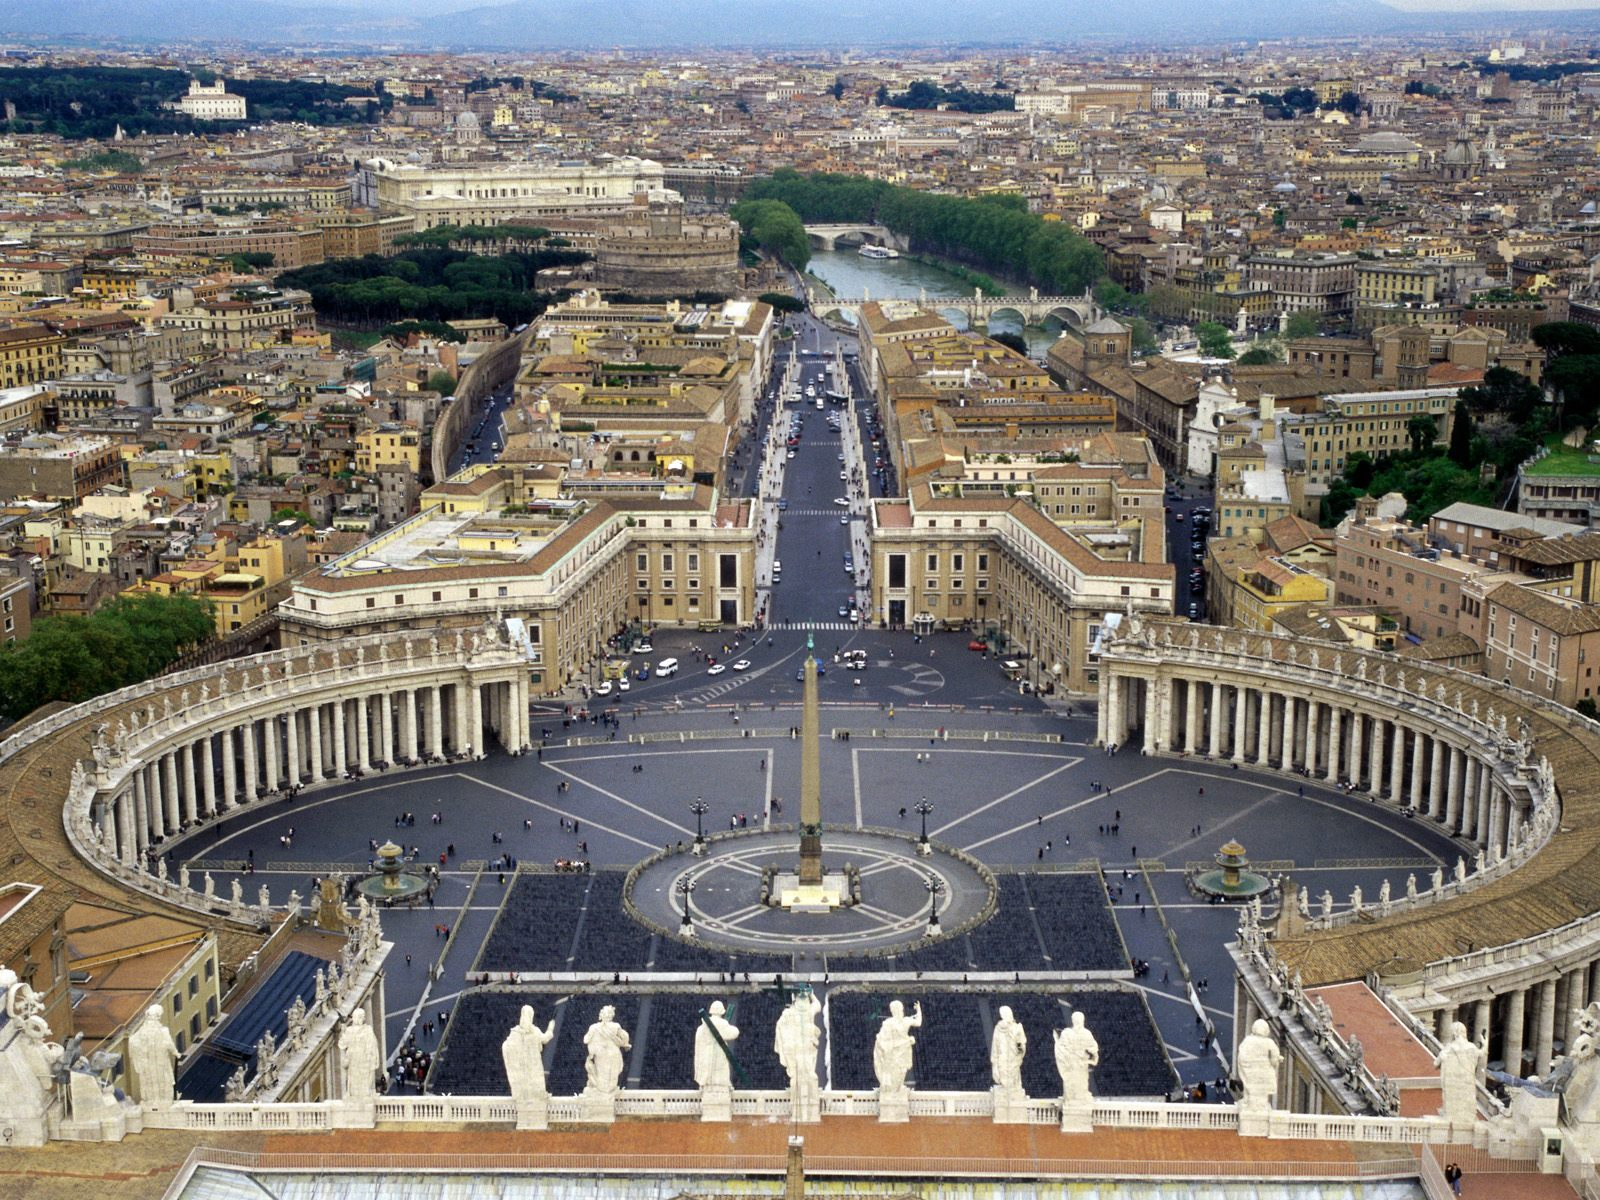 COB and the Roman Curia: Balancing Management and Spiritual Leadership